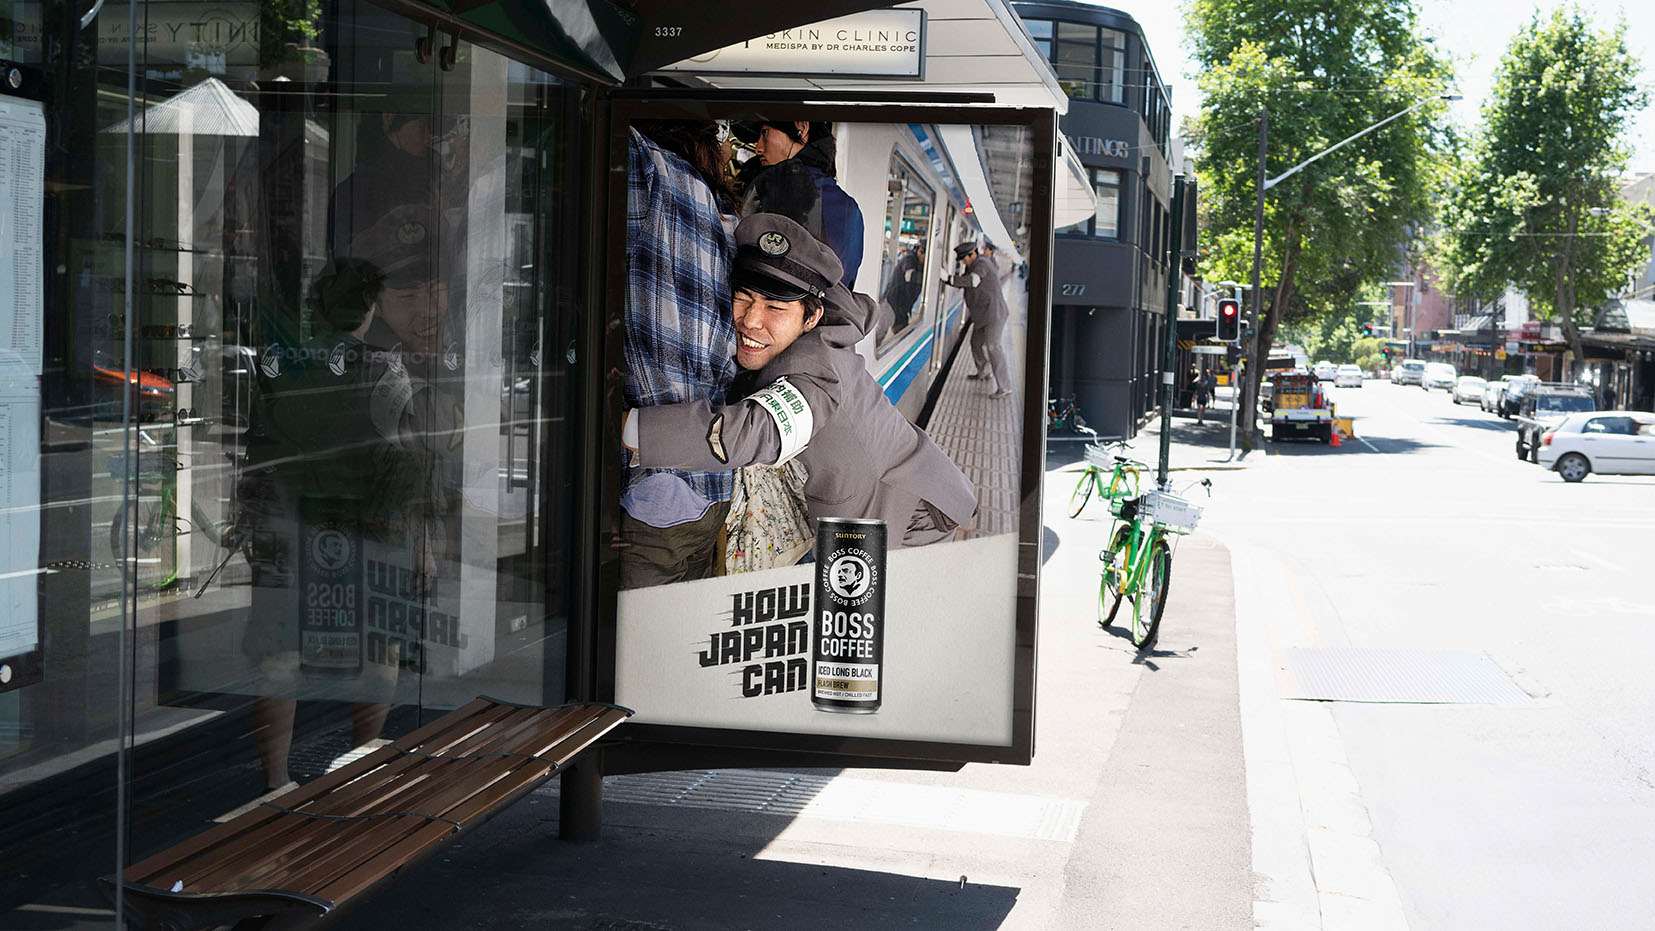 BOSS Coffee launches in Australia with 'How Japan Can' campaign via Clemenger BBDO Sydney